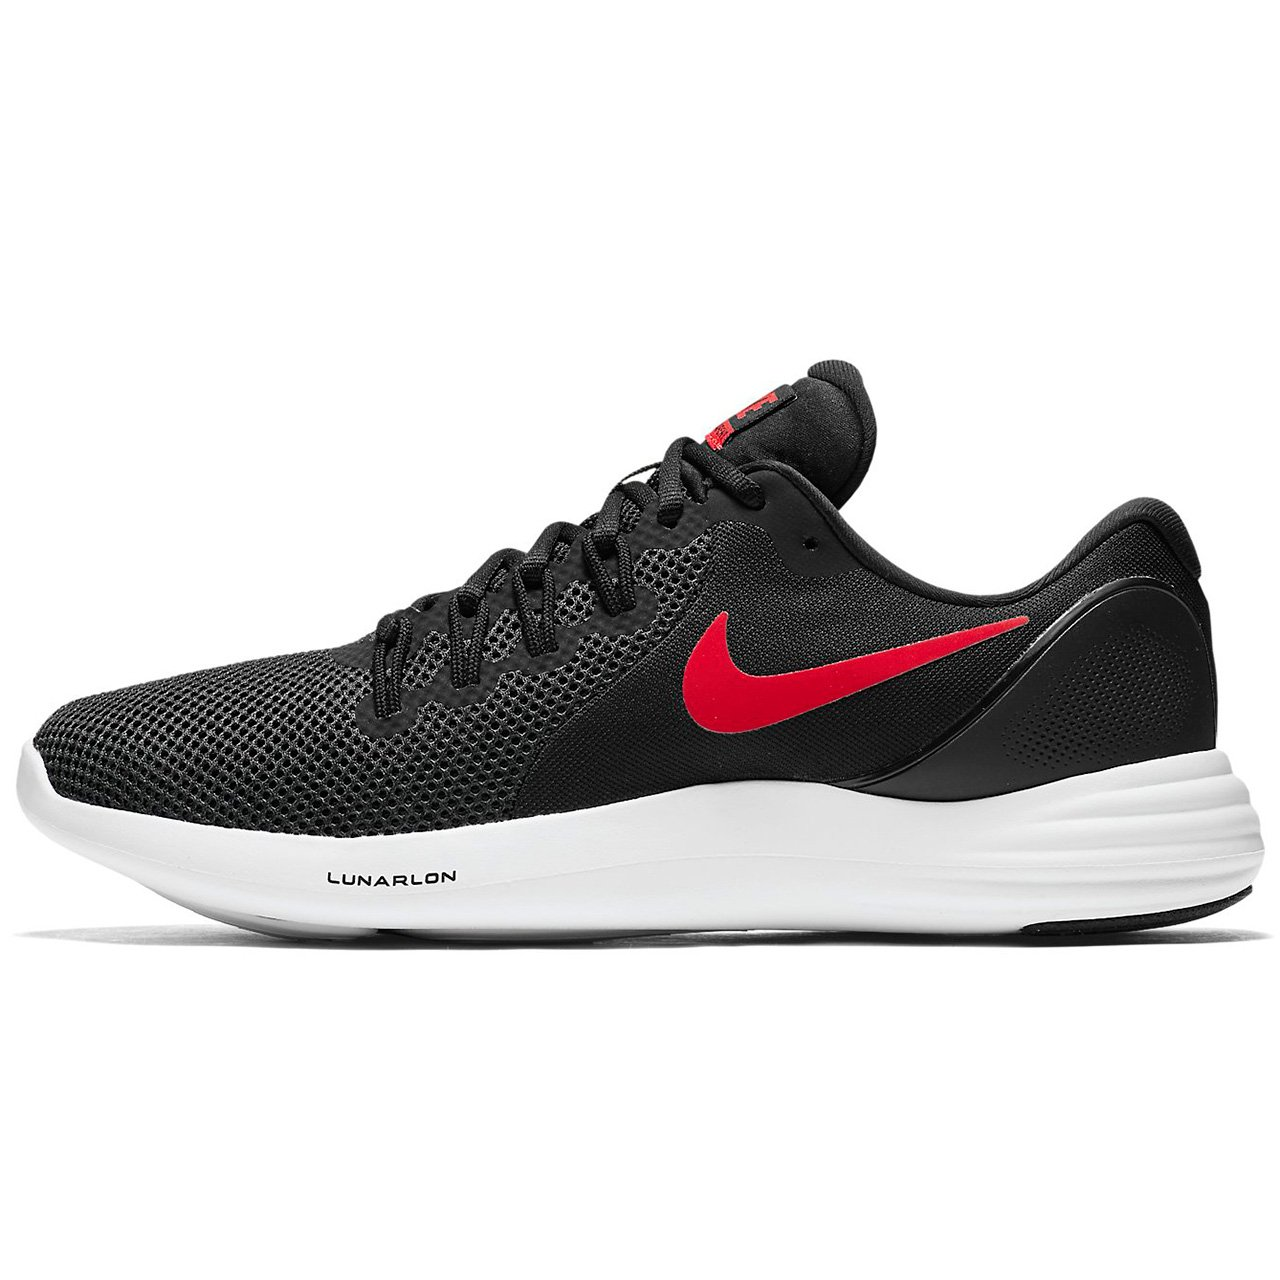 NIKE Lunar Apparent Mens Running Shoes B06WGPNYKJ 12 D(M) US|Black Red Anthracite White